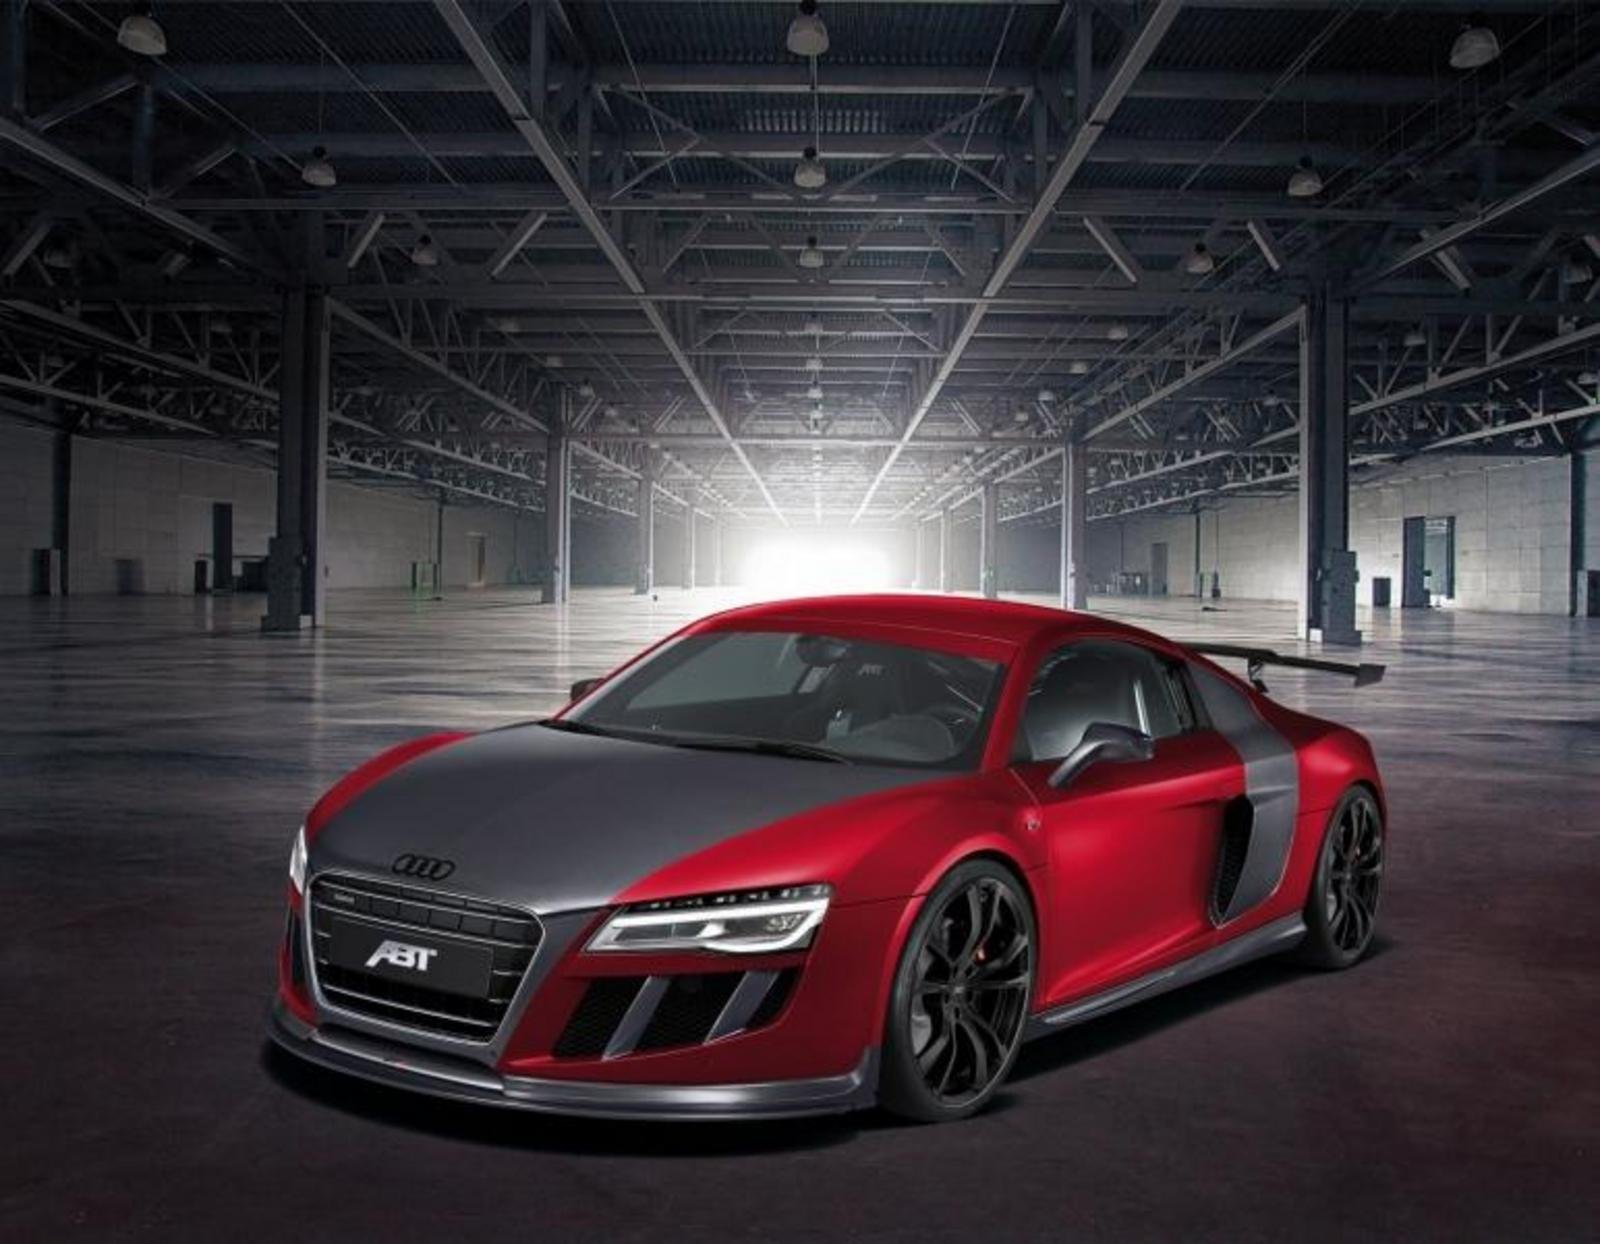 2013 Audi R8 Gtr By Abt Sportsline Review Top Speed